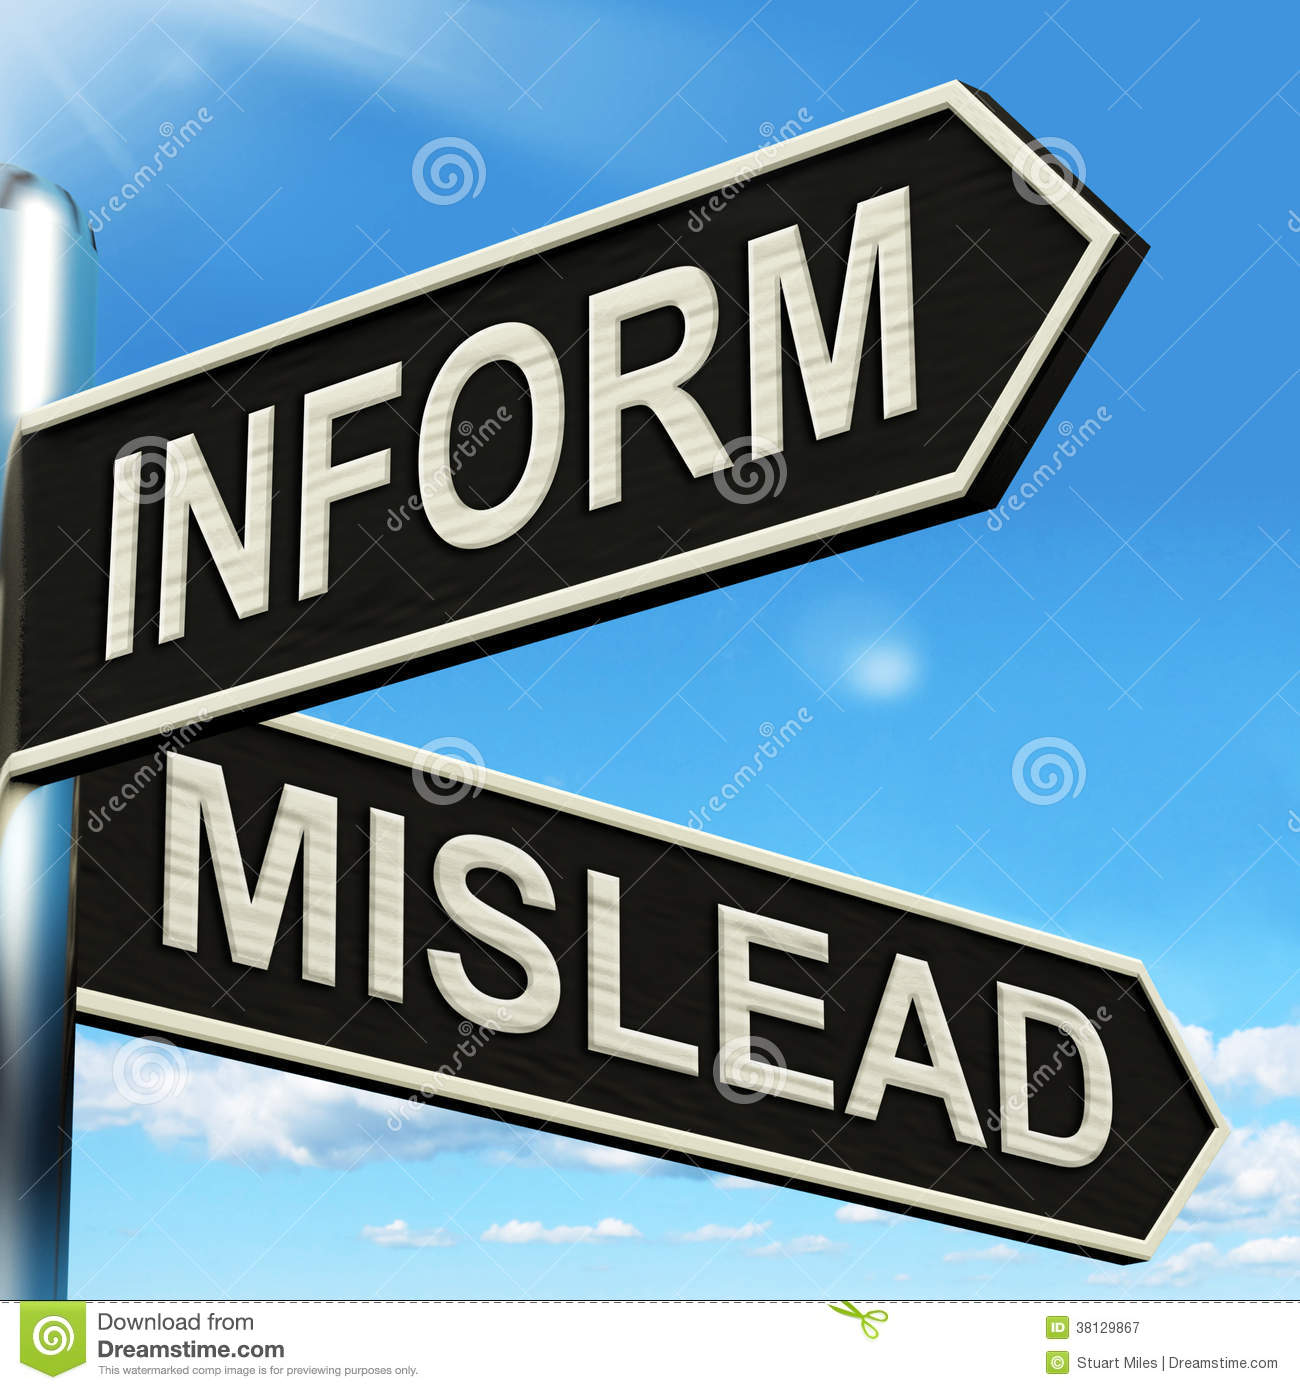 Mislead Inform Keys Shows Misleading Or Informative Advice Royalty.